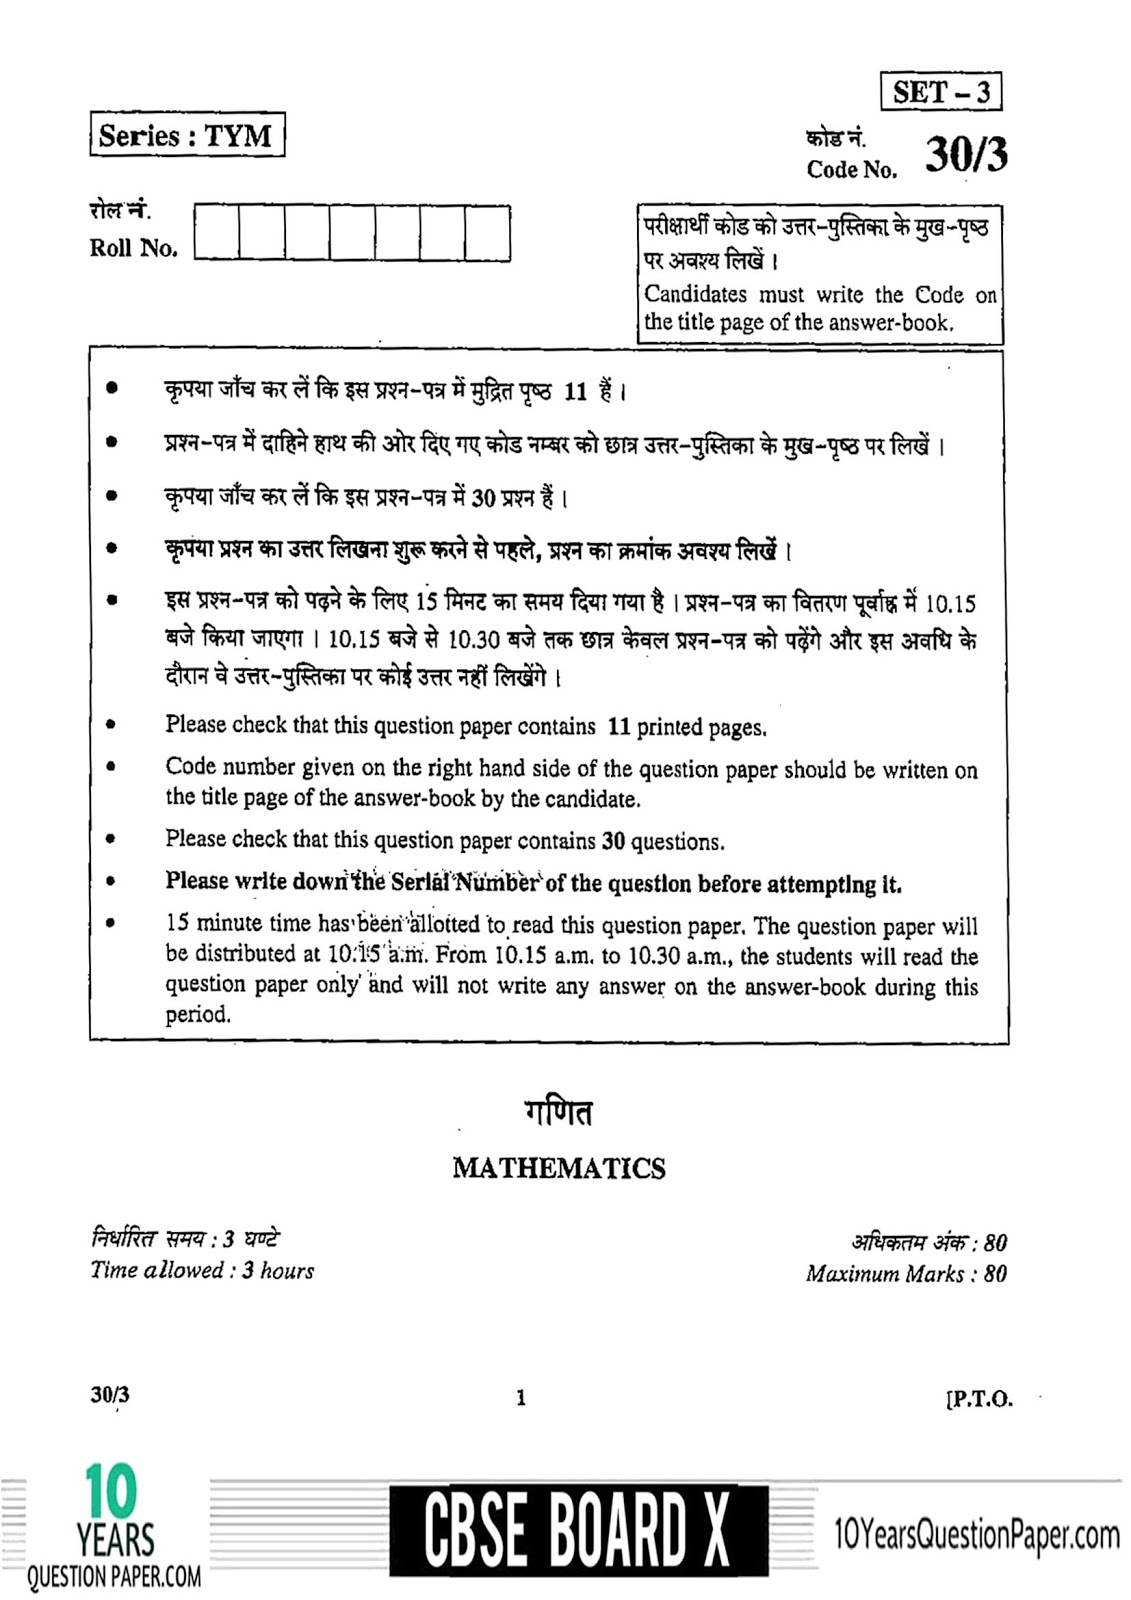 CBSE Board 2018 Maths Question paper Class 10 Page-01